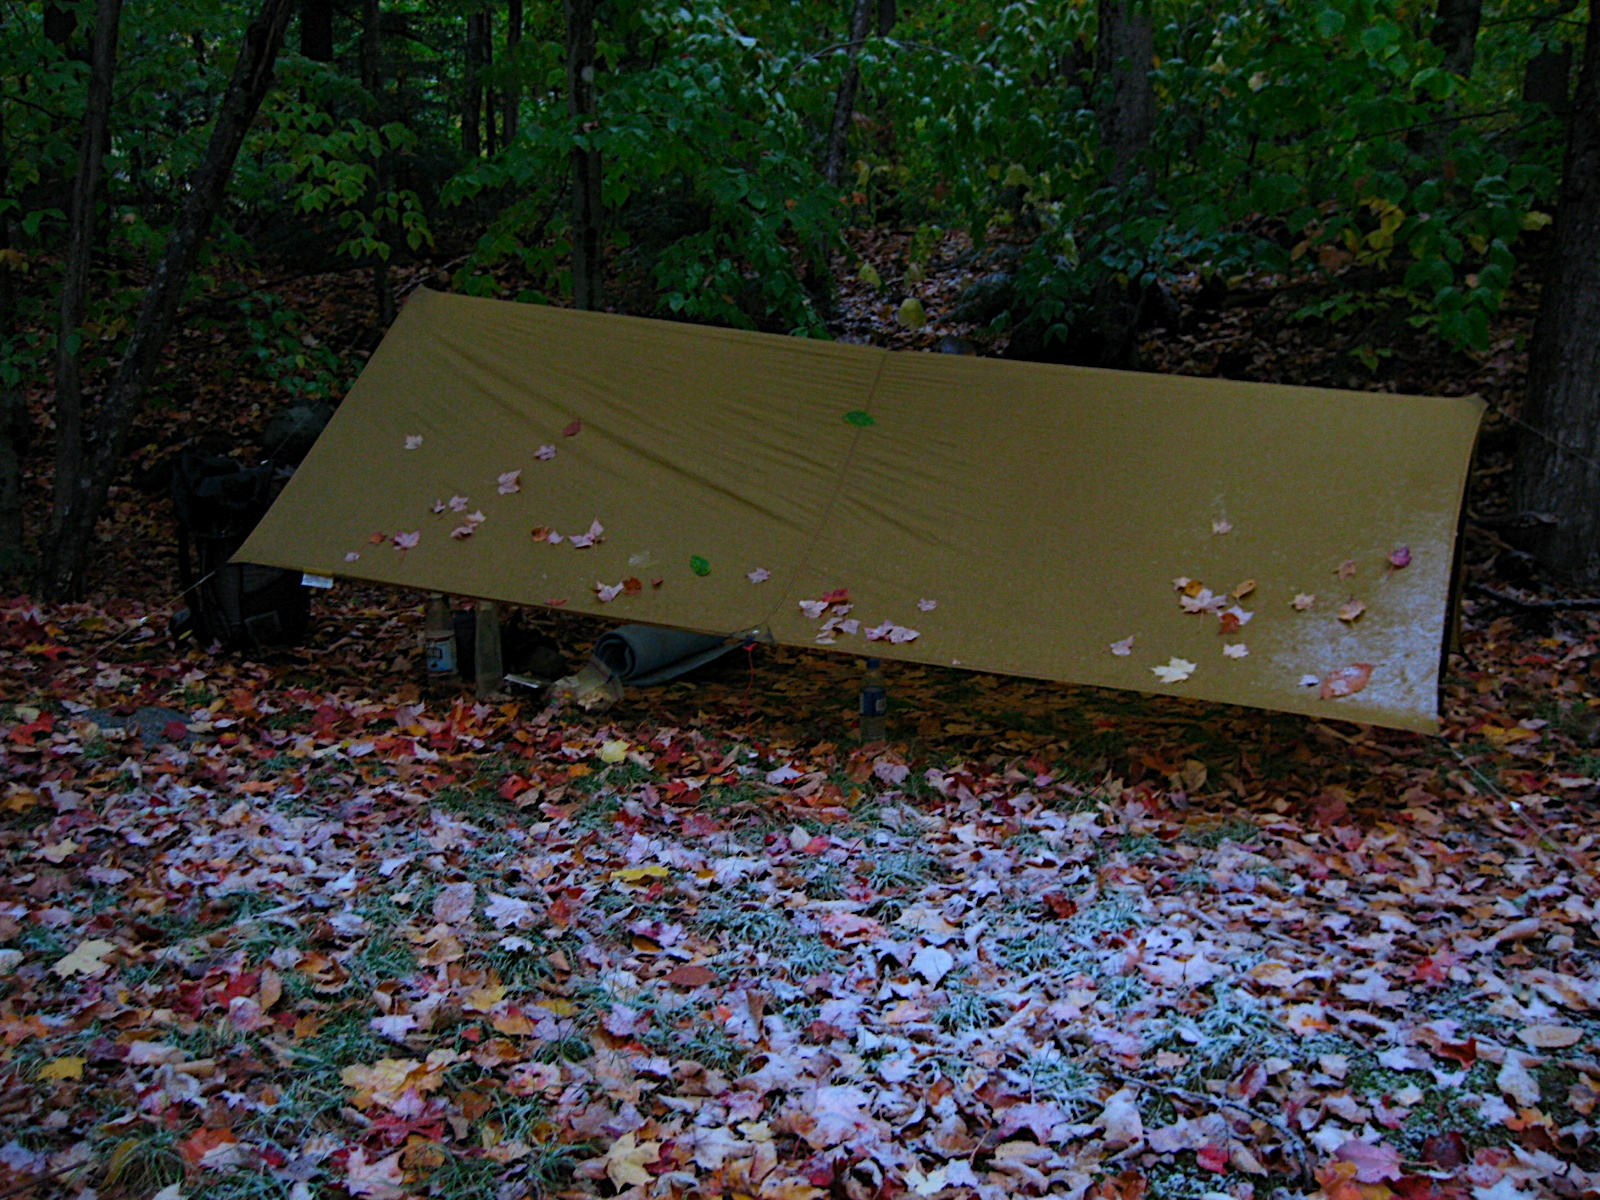 Sleeping under a tarp instead of in a tent takes some getting used to. Common worries are bugs wind varmints and ground water. & Guthooku0027s Gear Guide: A-Frame tarps   Guthook Hikes!